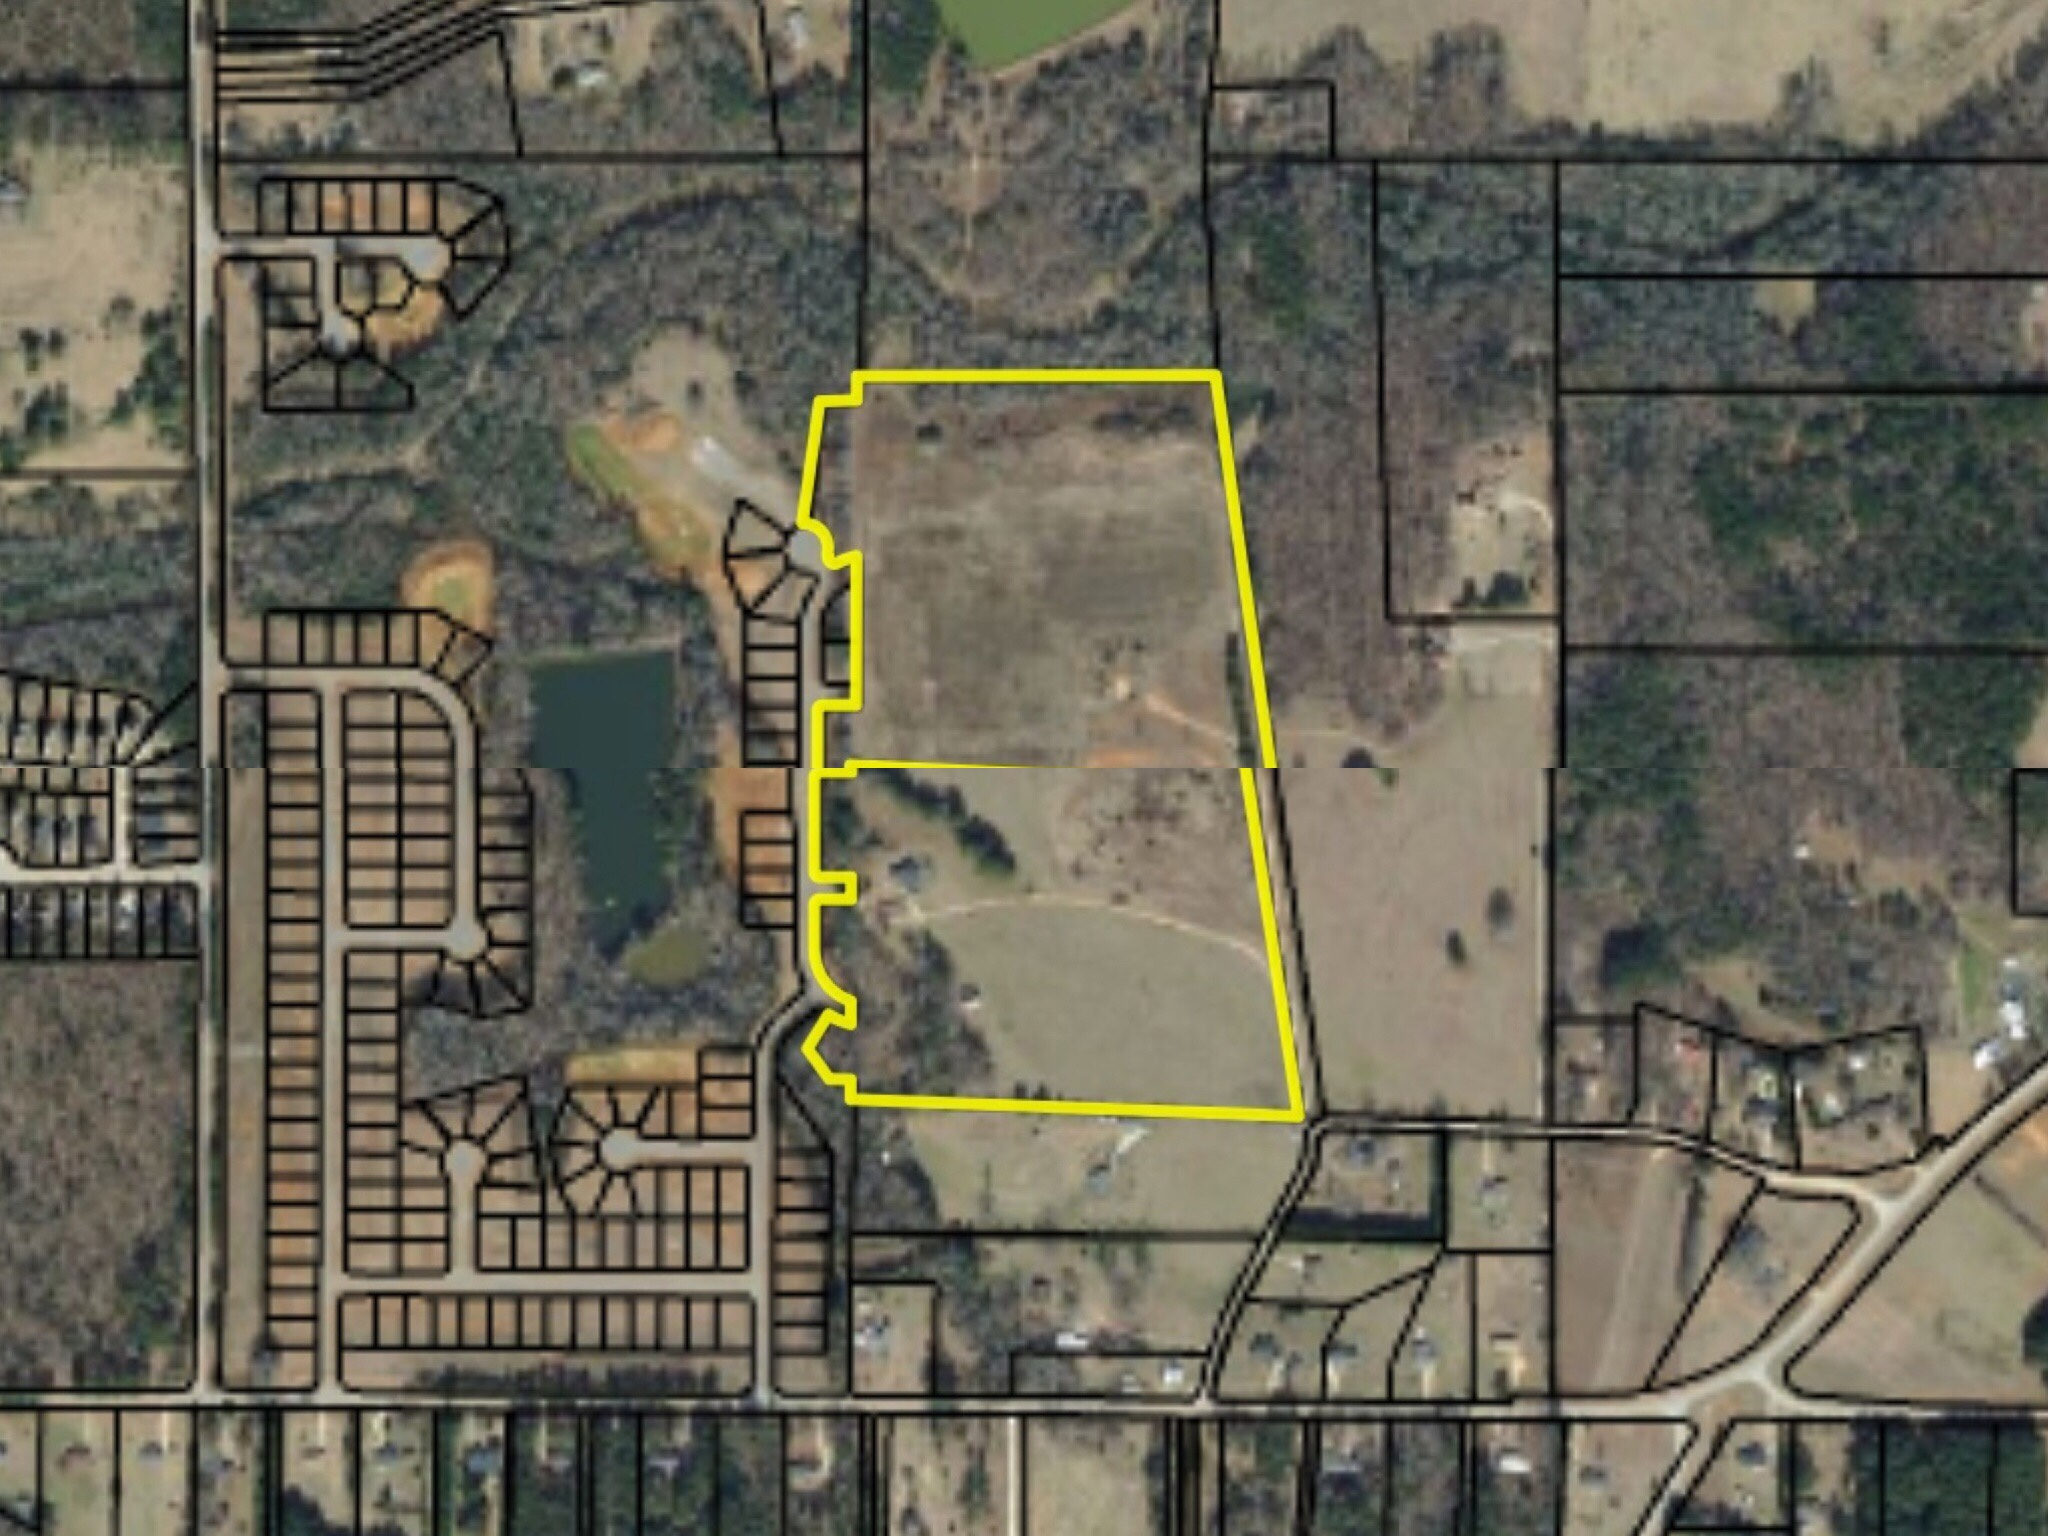 Subject property for proposed Bunn Family rezoning